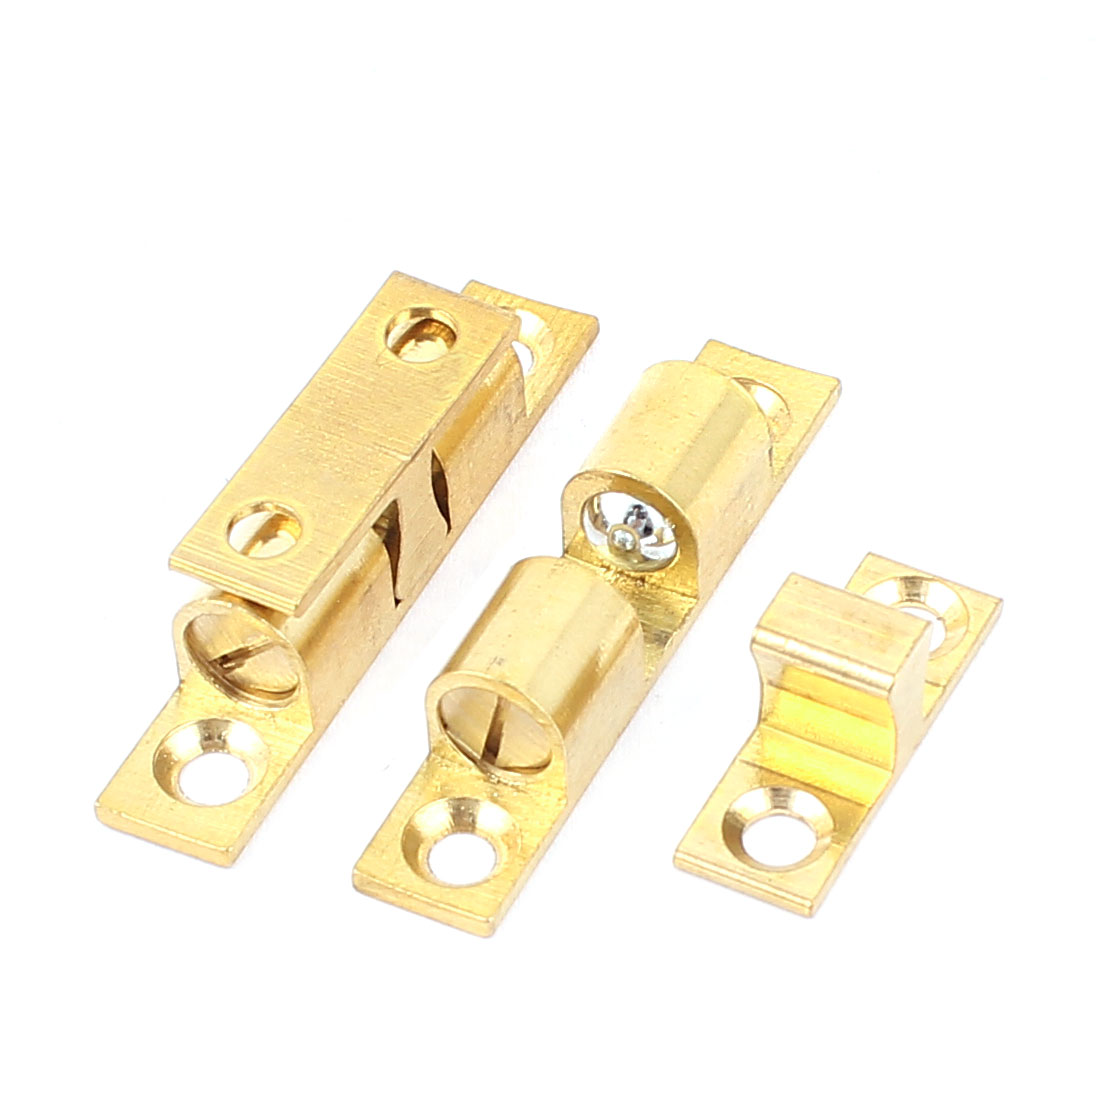 2 Pcs Brass Cabinet Door Double Ball Catch Hardware 42mm Long